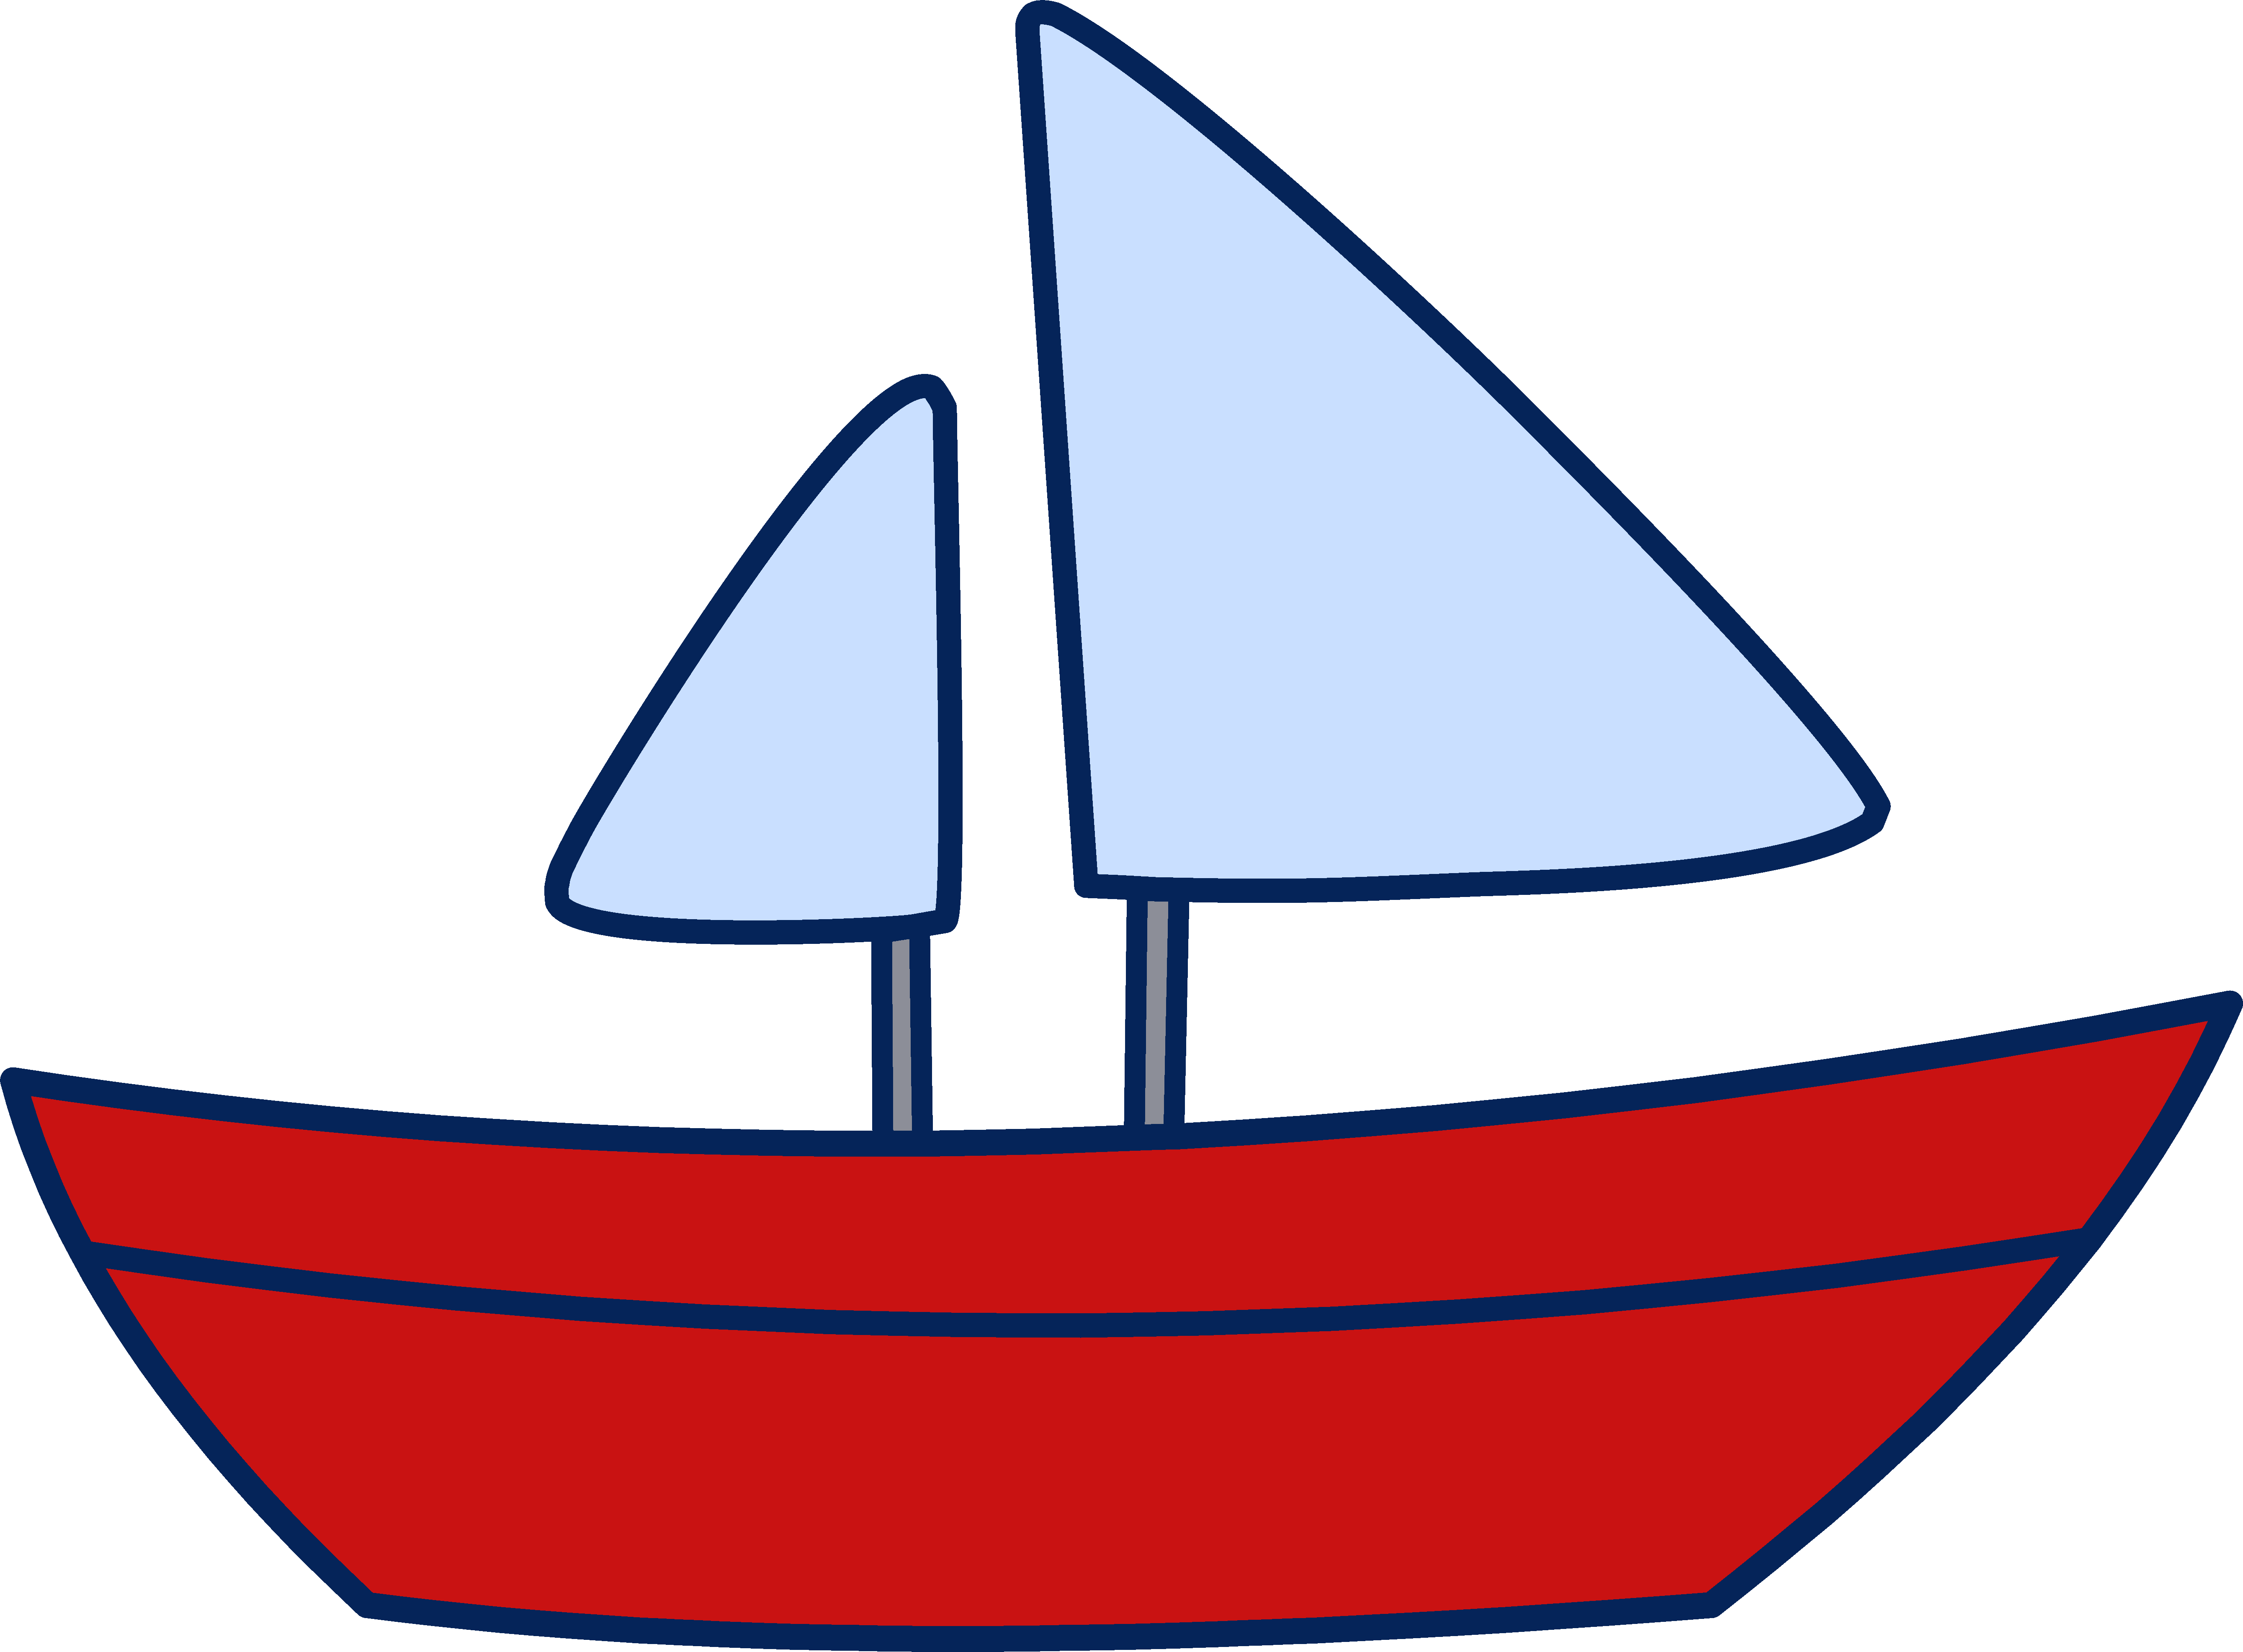 Animated boat clipart png royalty free stock HD Navy Ships Clipart Animated - Transparent Background Boat Clipart ... png royalty free stock